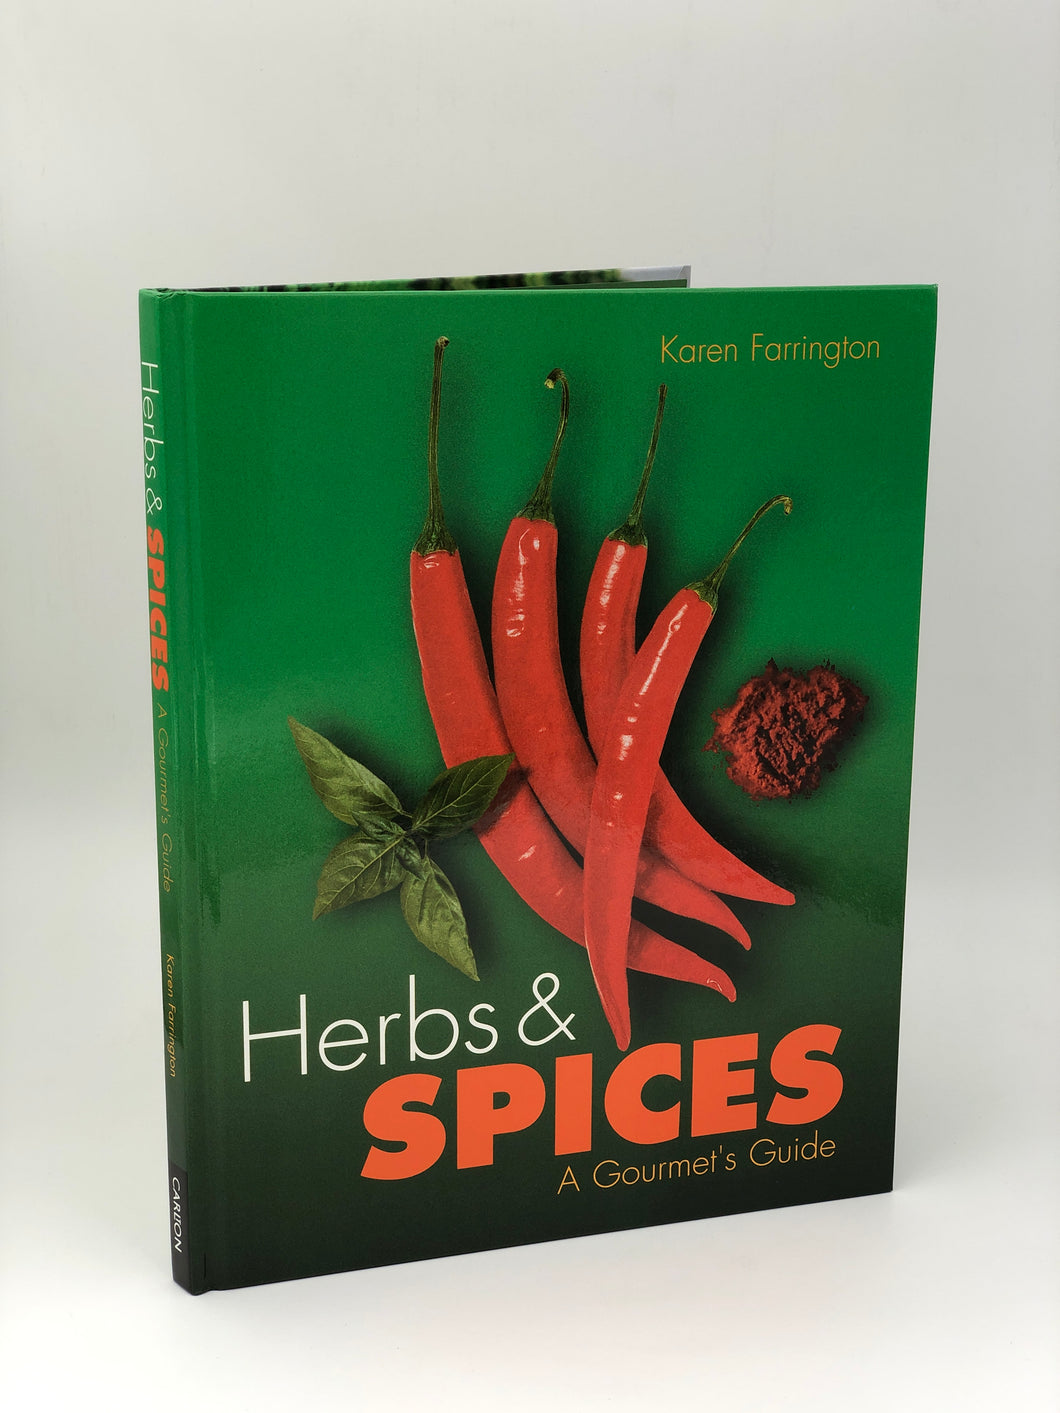 Herbs & Spices - A Gourmet's Guide